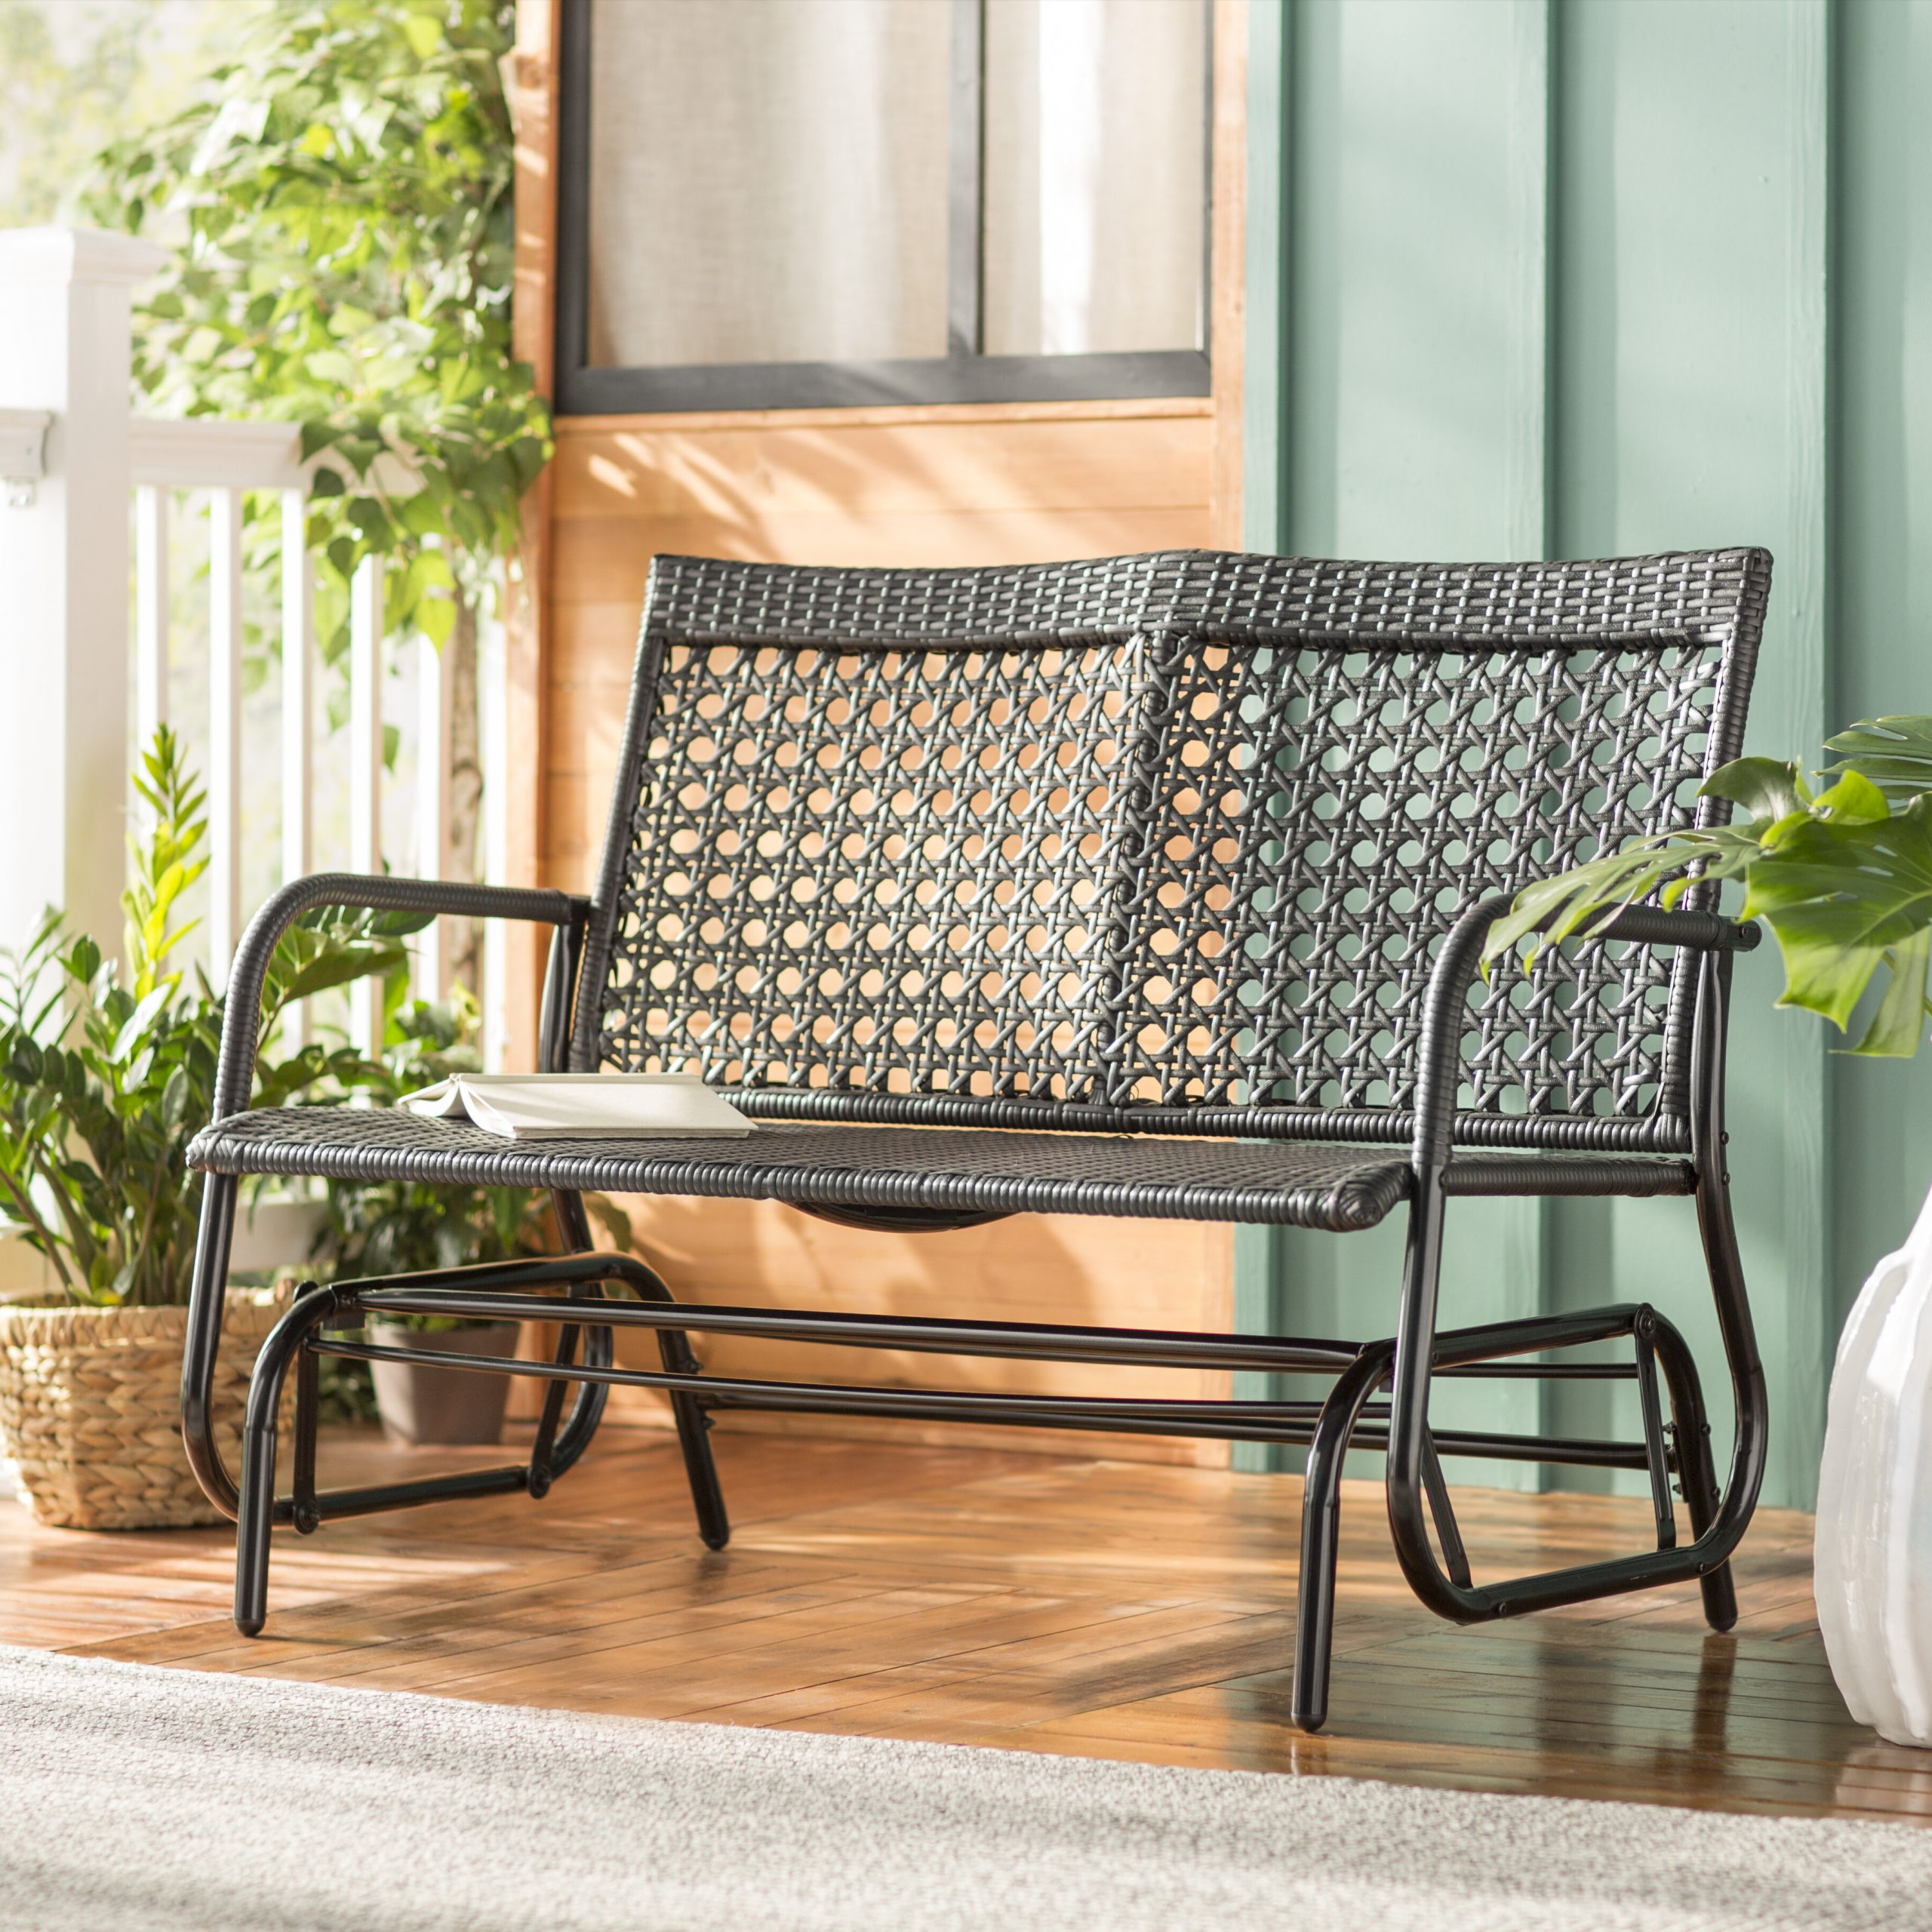 Shupe Steel Rattan Outdoor Patio Double Bench Glider Within Speckled Glider Benches (View 19 of 25)